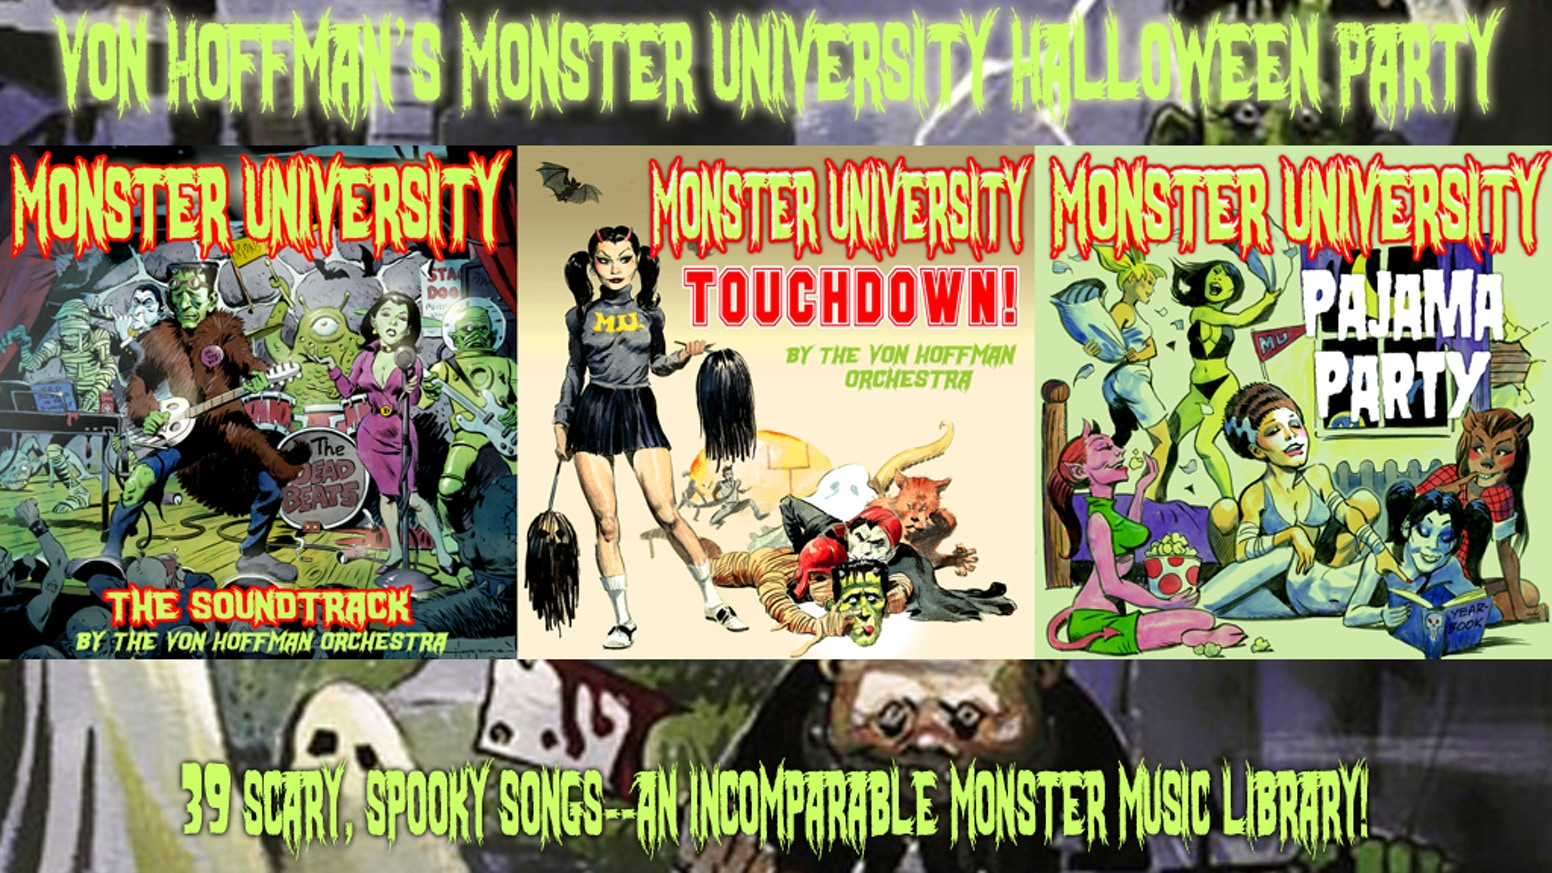 Monster University Halloween Party by Mike Hoffman — Kickstarter